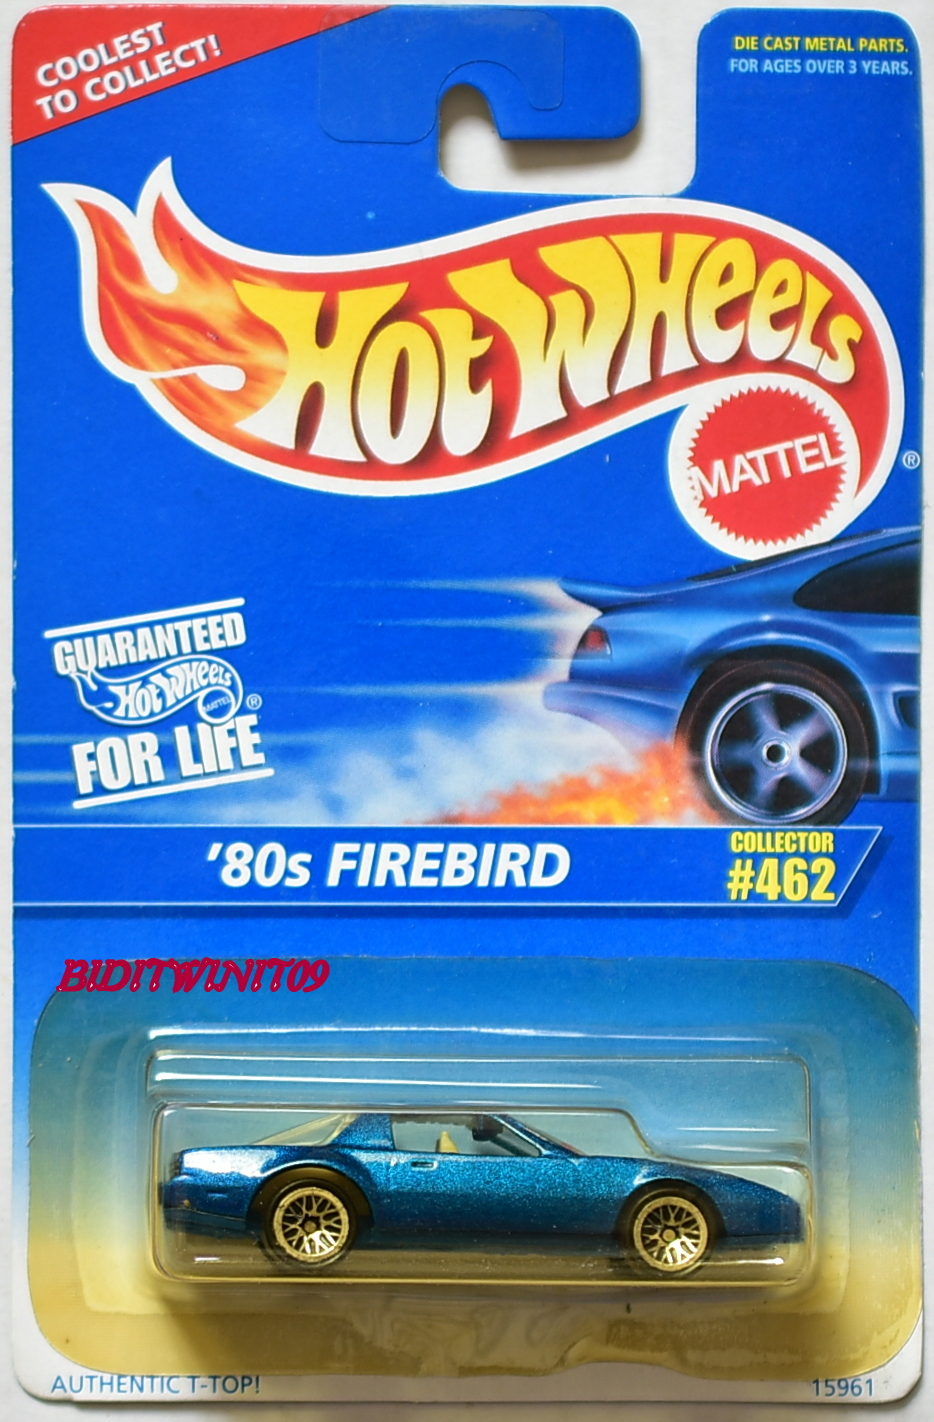 HOT WHEELS 1996 '80s FIREBIRD COLL.#462 BLUE